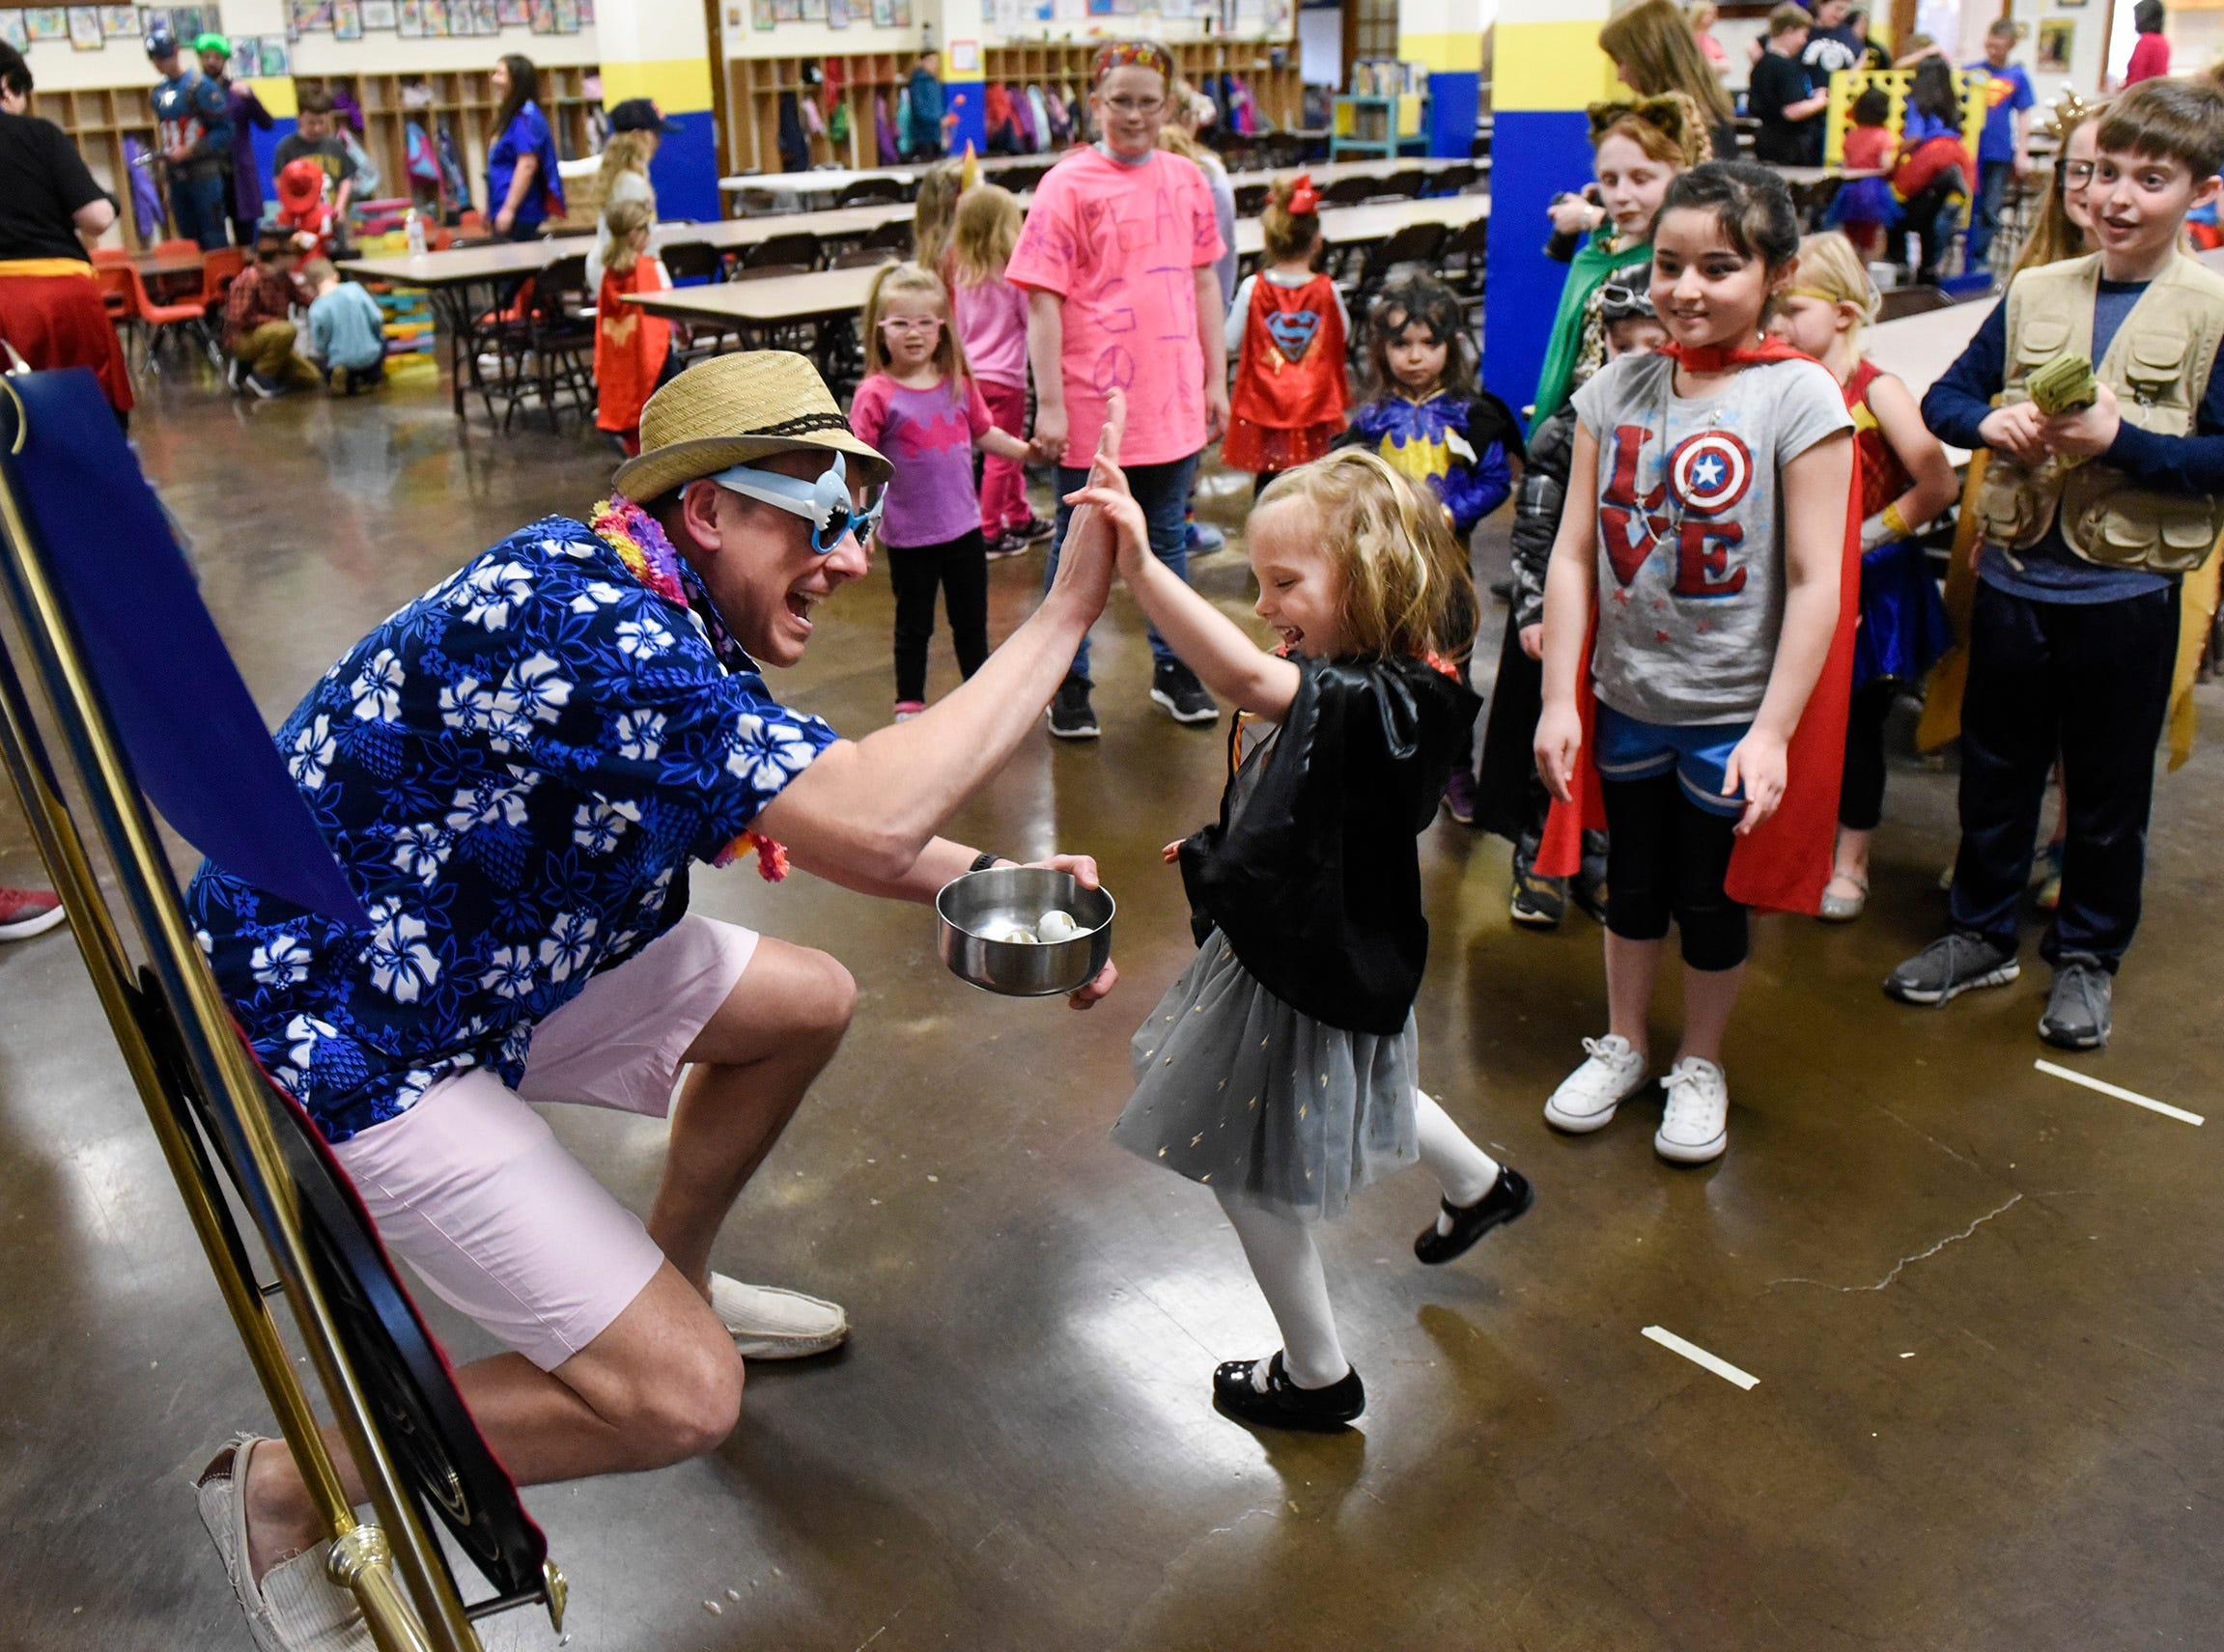 Students play the Captain America Shield Throw game with parent volunteer Matt Beirne during Superhero Day Friday, April 27, at All Saints Academy in St. Joseph. Money raised by the students will go to the Epilepsy Foundation.